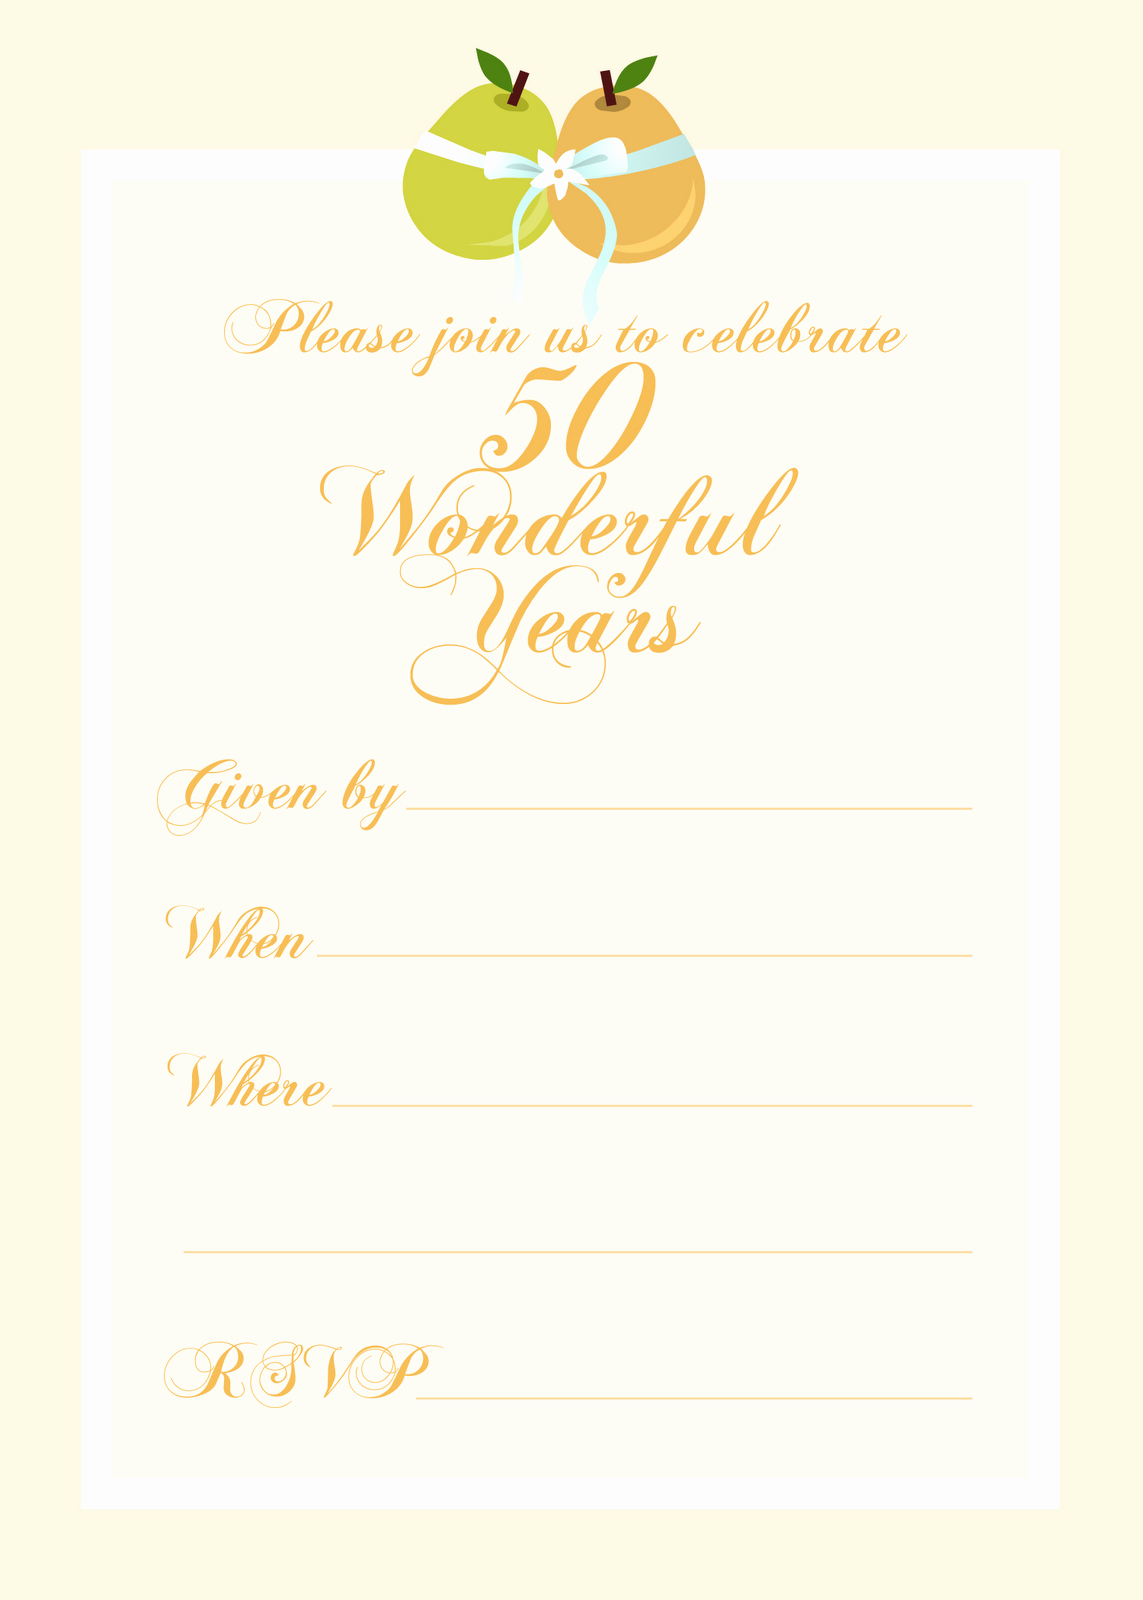 50th Anniversary Invitation Template Luxury Free Printable Party Invitations Free 50th Wedding